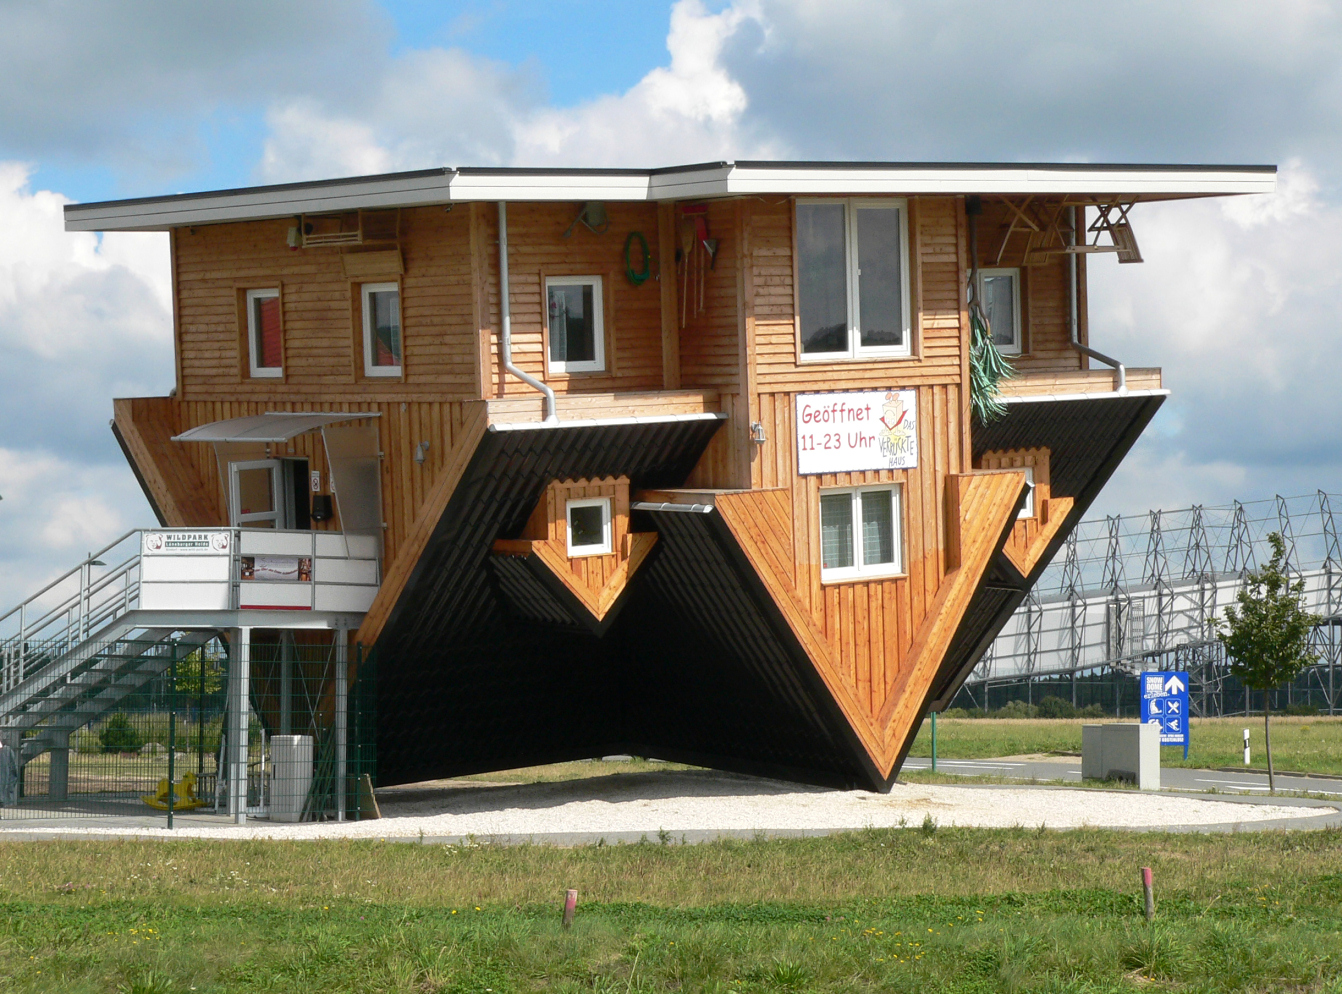 upside_down_house_Germany (1)